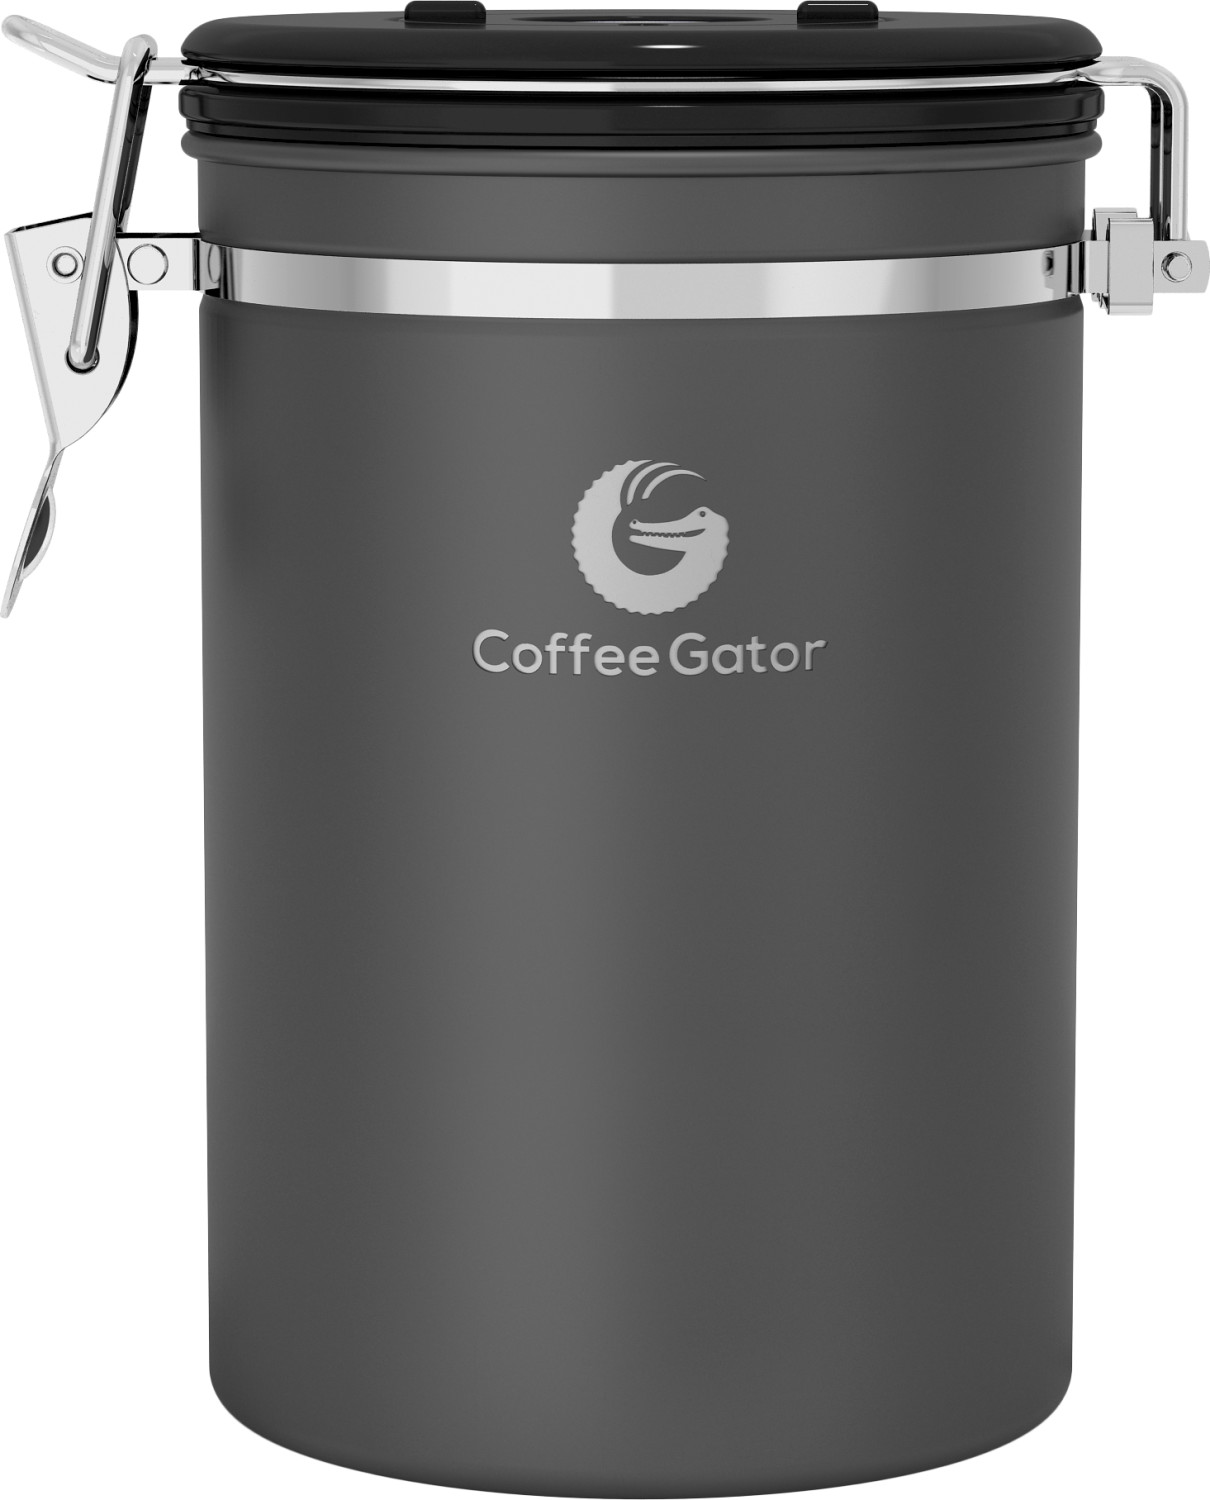 Image of Coffee Gator Stainless Steel Coffee Canister Large grey